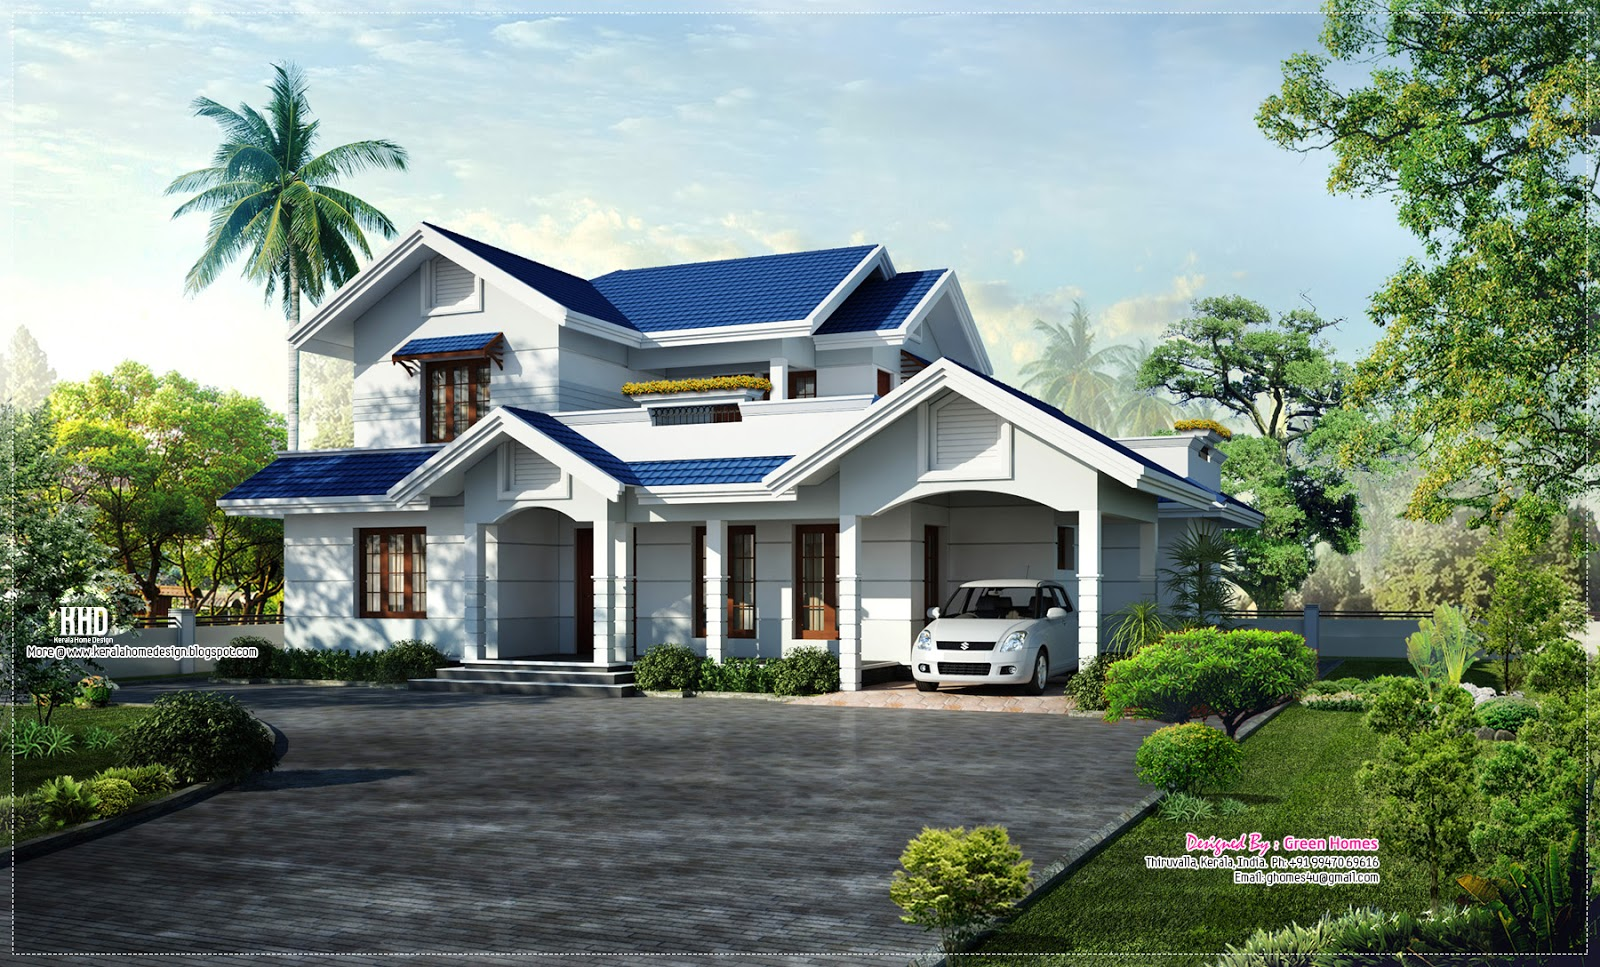 Eco friendly houses beautiful blue roof villa elevation for Beautiful villas images